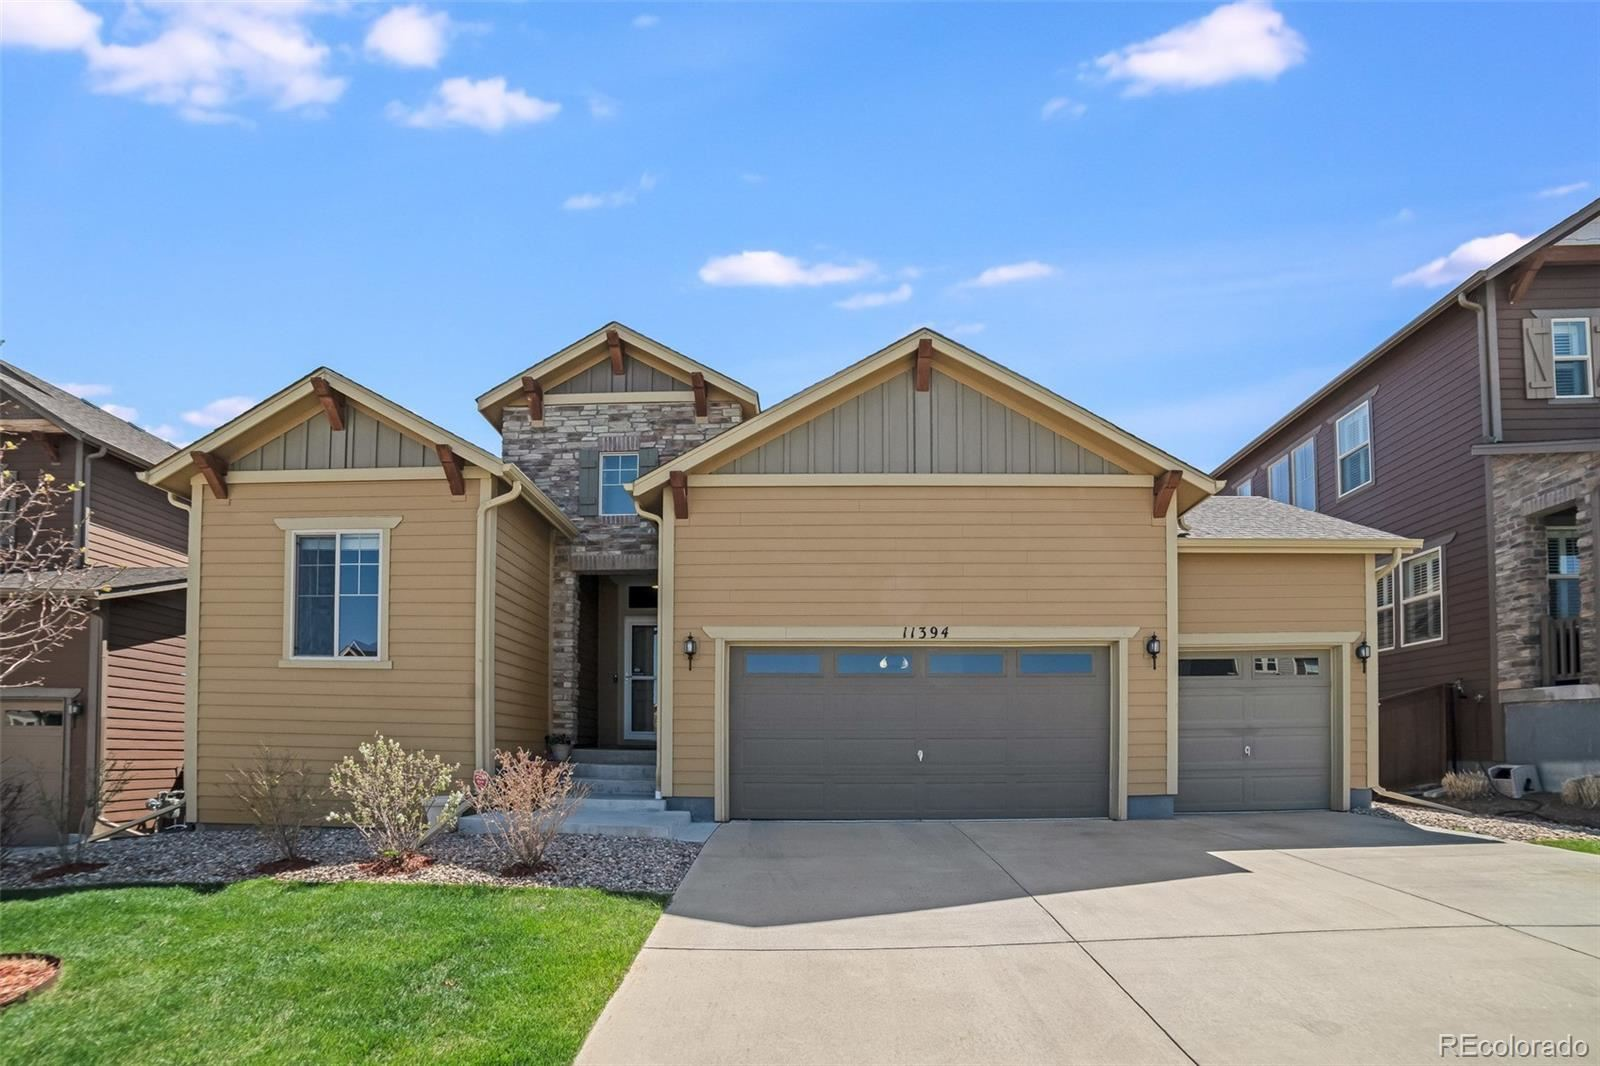 11394  Clove Way, Parker, CO 80134 - #: 7152670